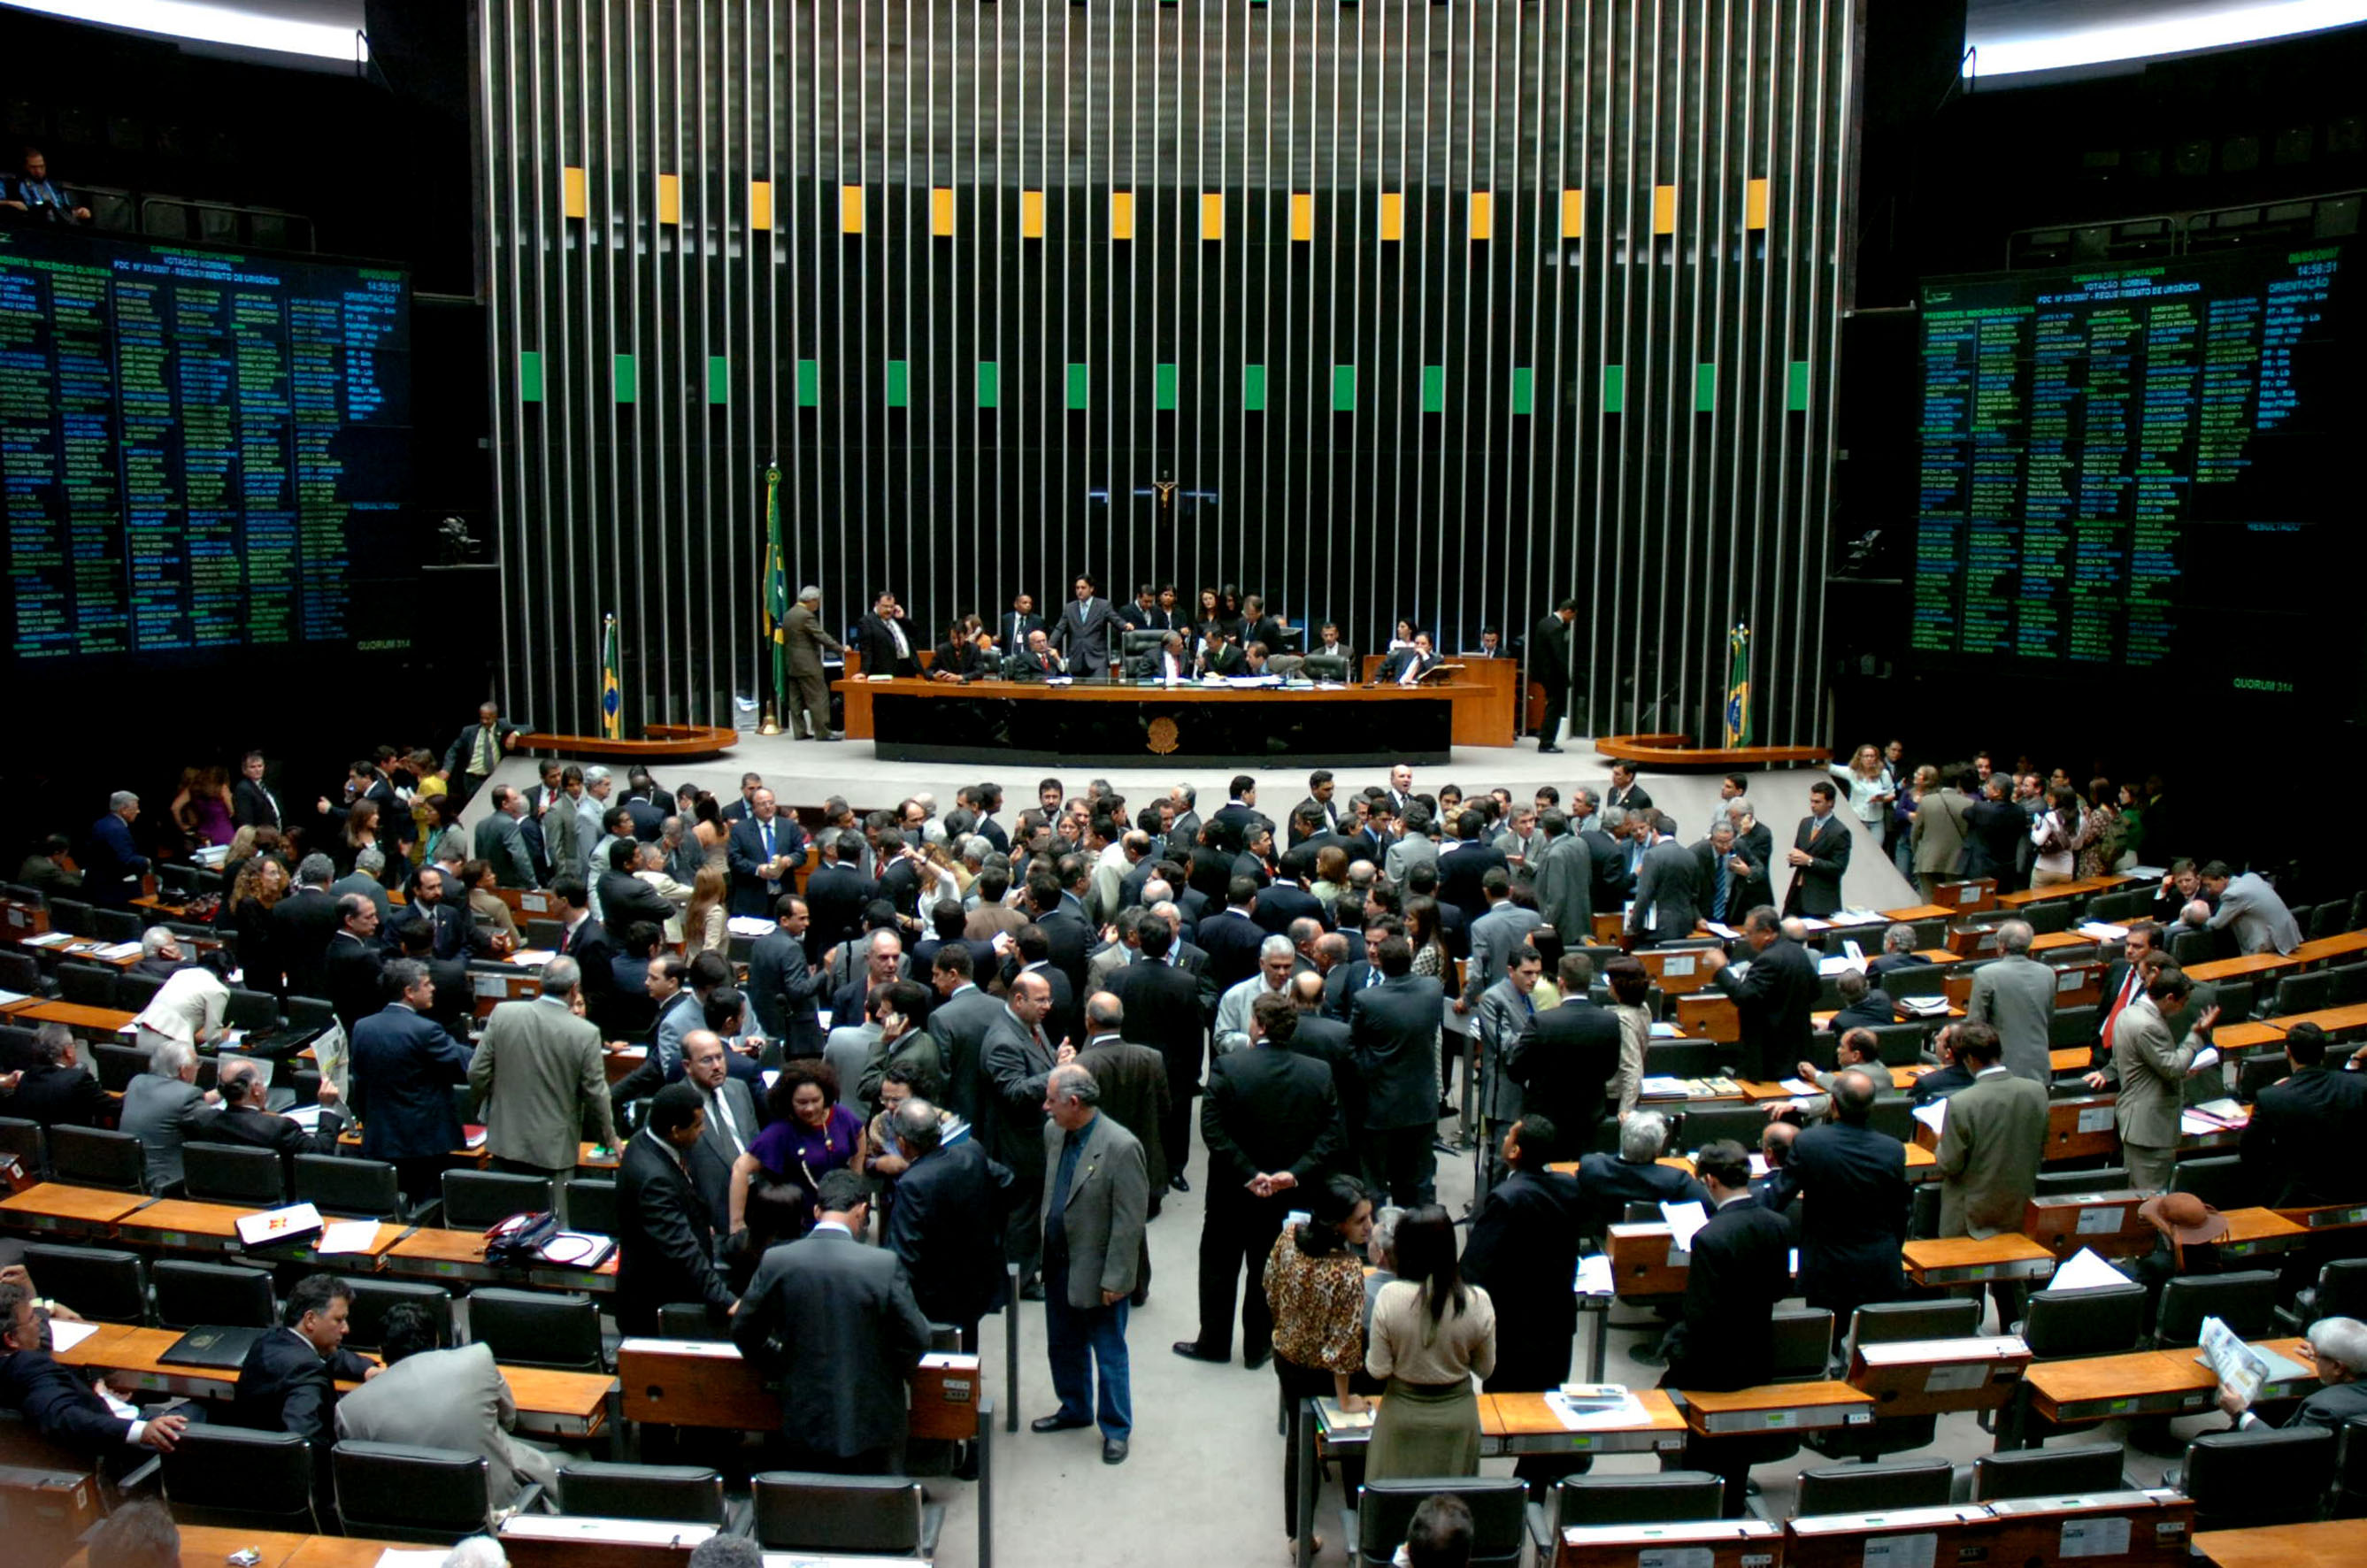 Chamber_of_Deputies_of_Brazil_2.jpg